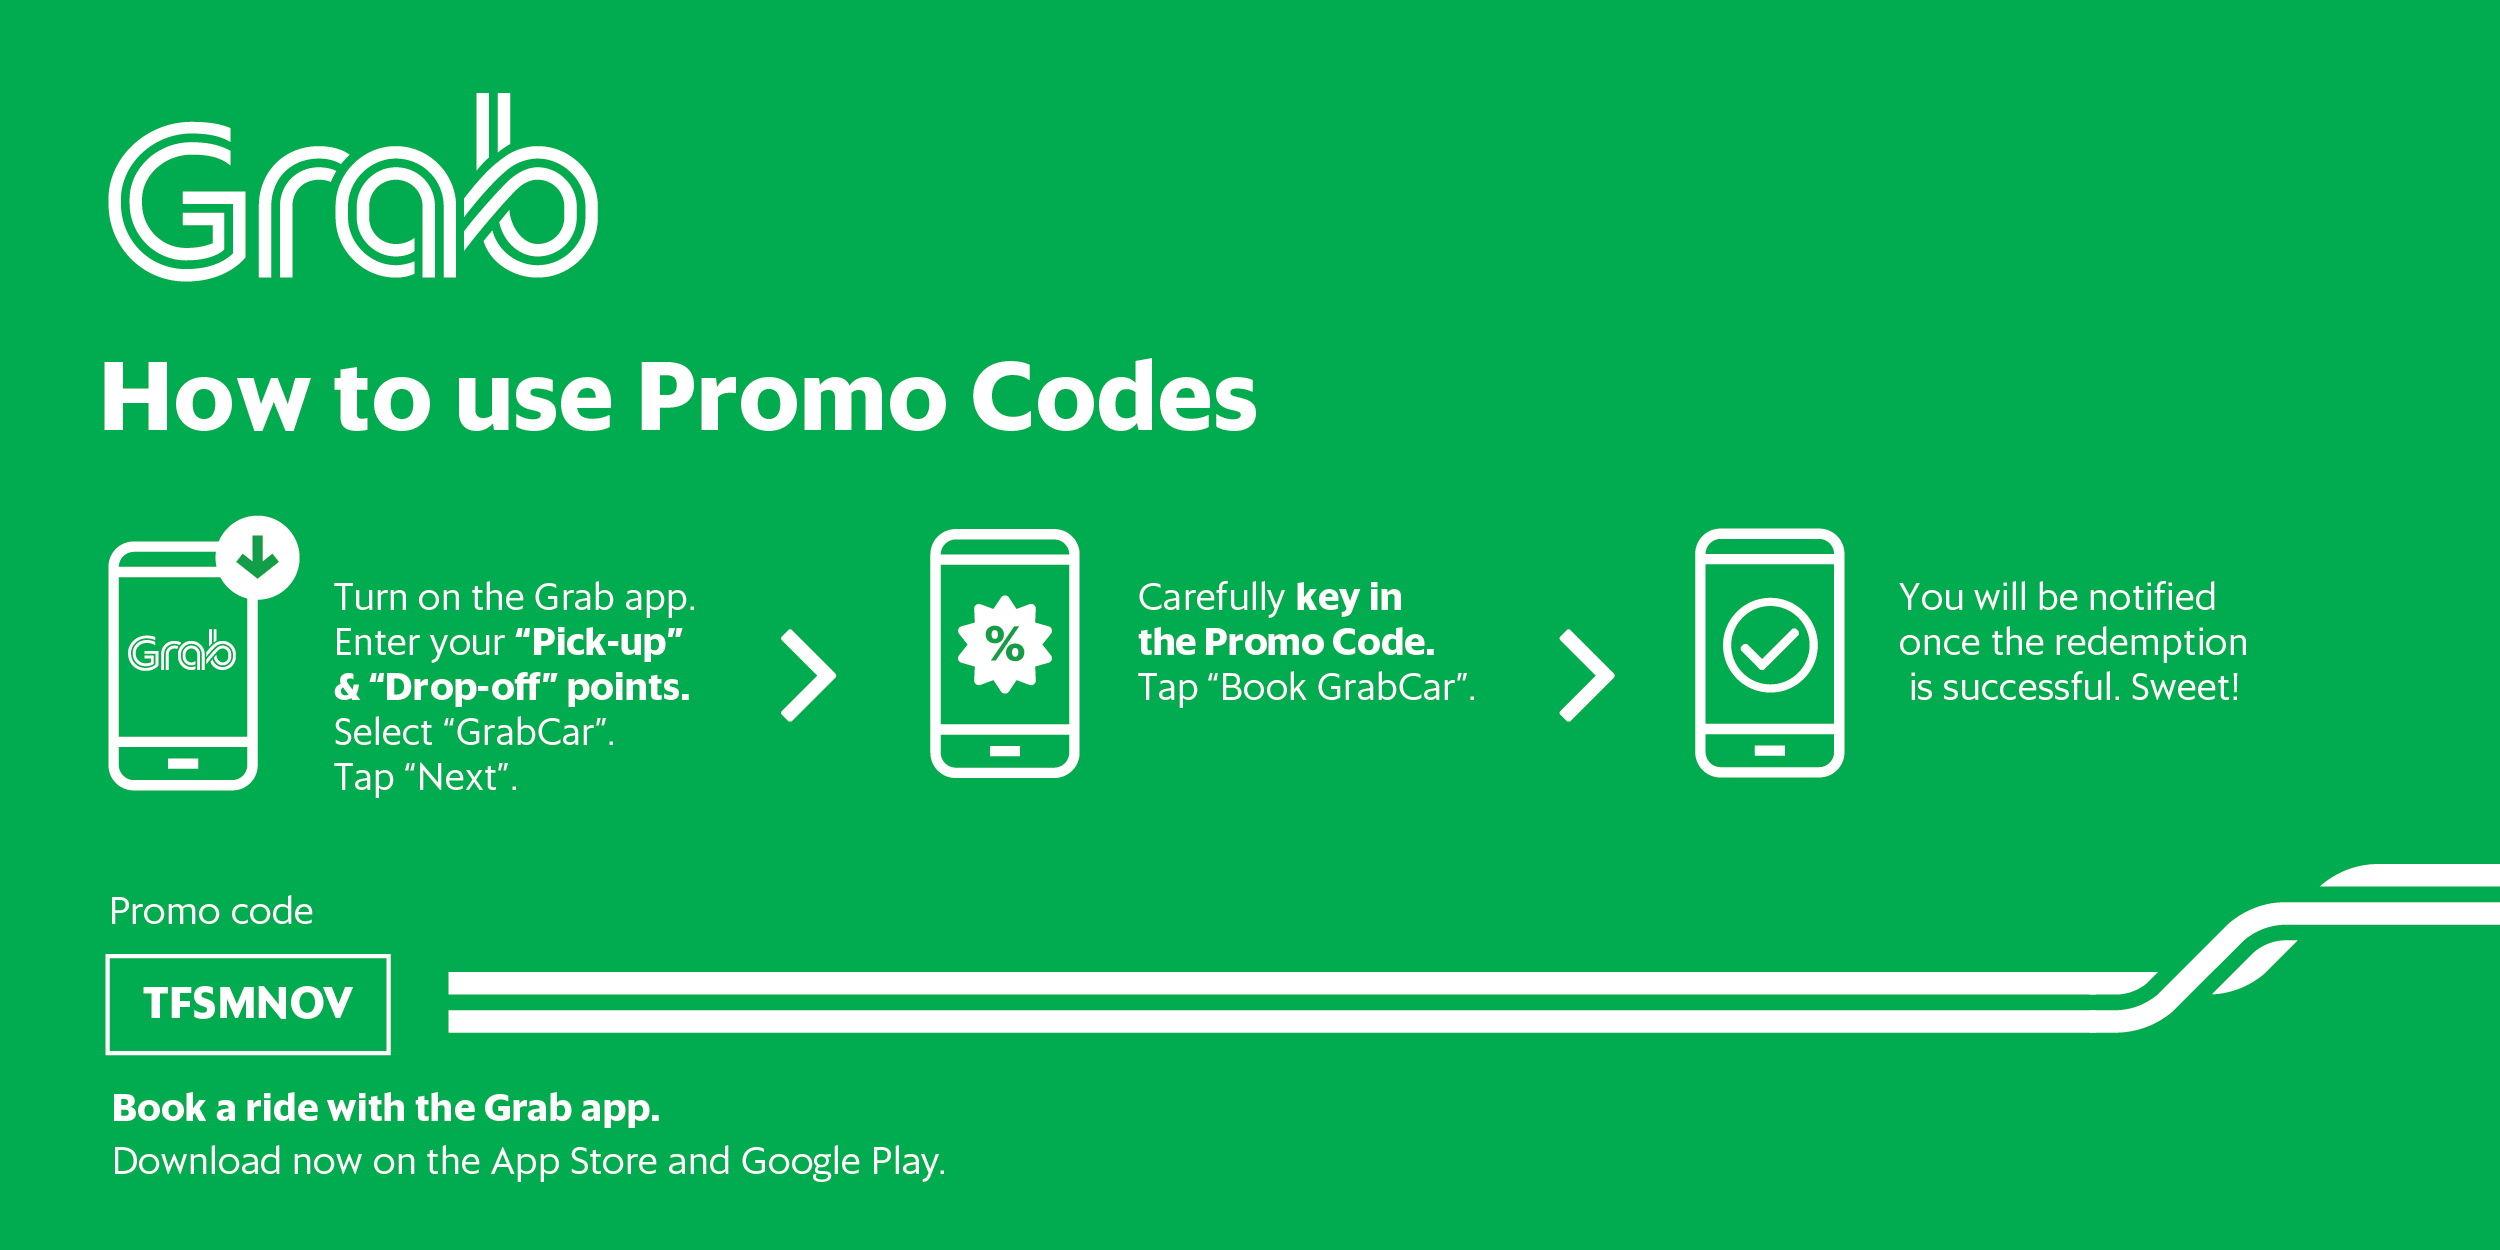 grab-how-to-use-promo-code-fa-01